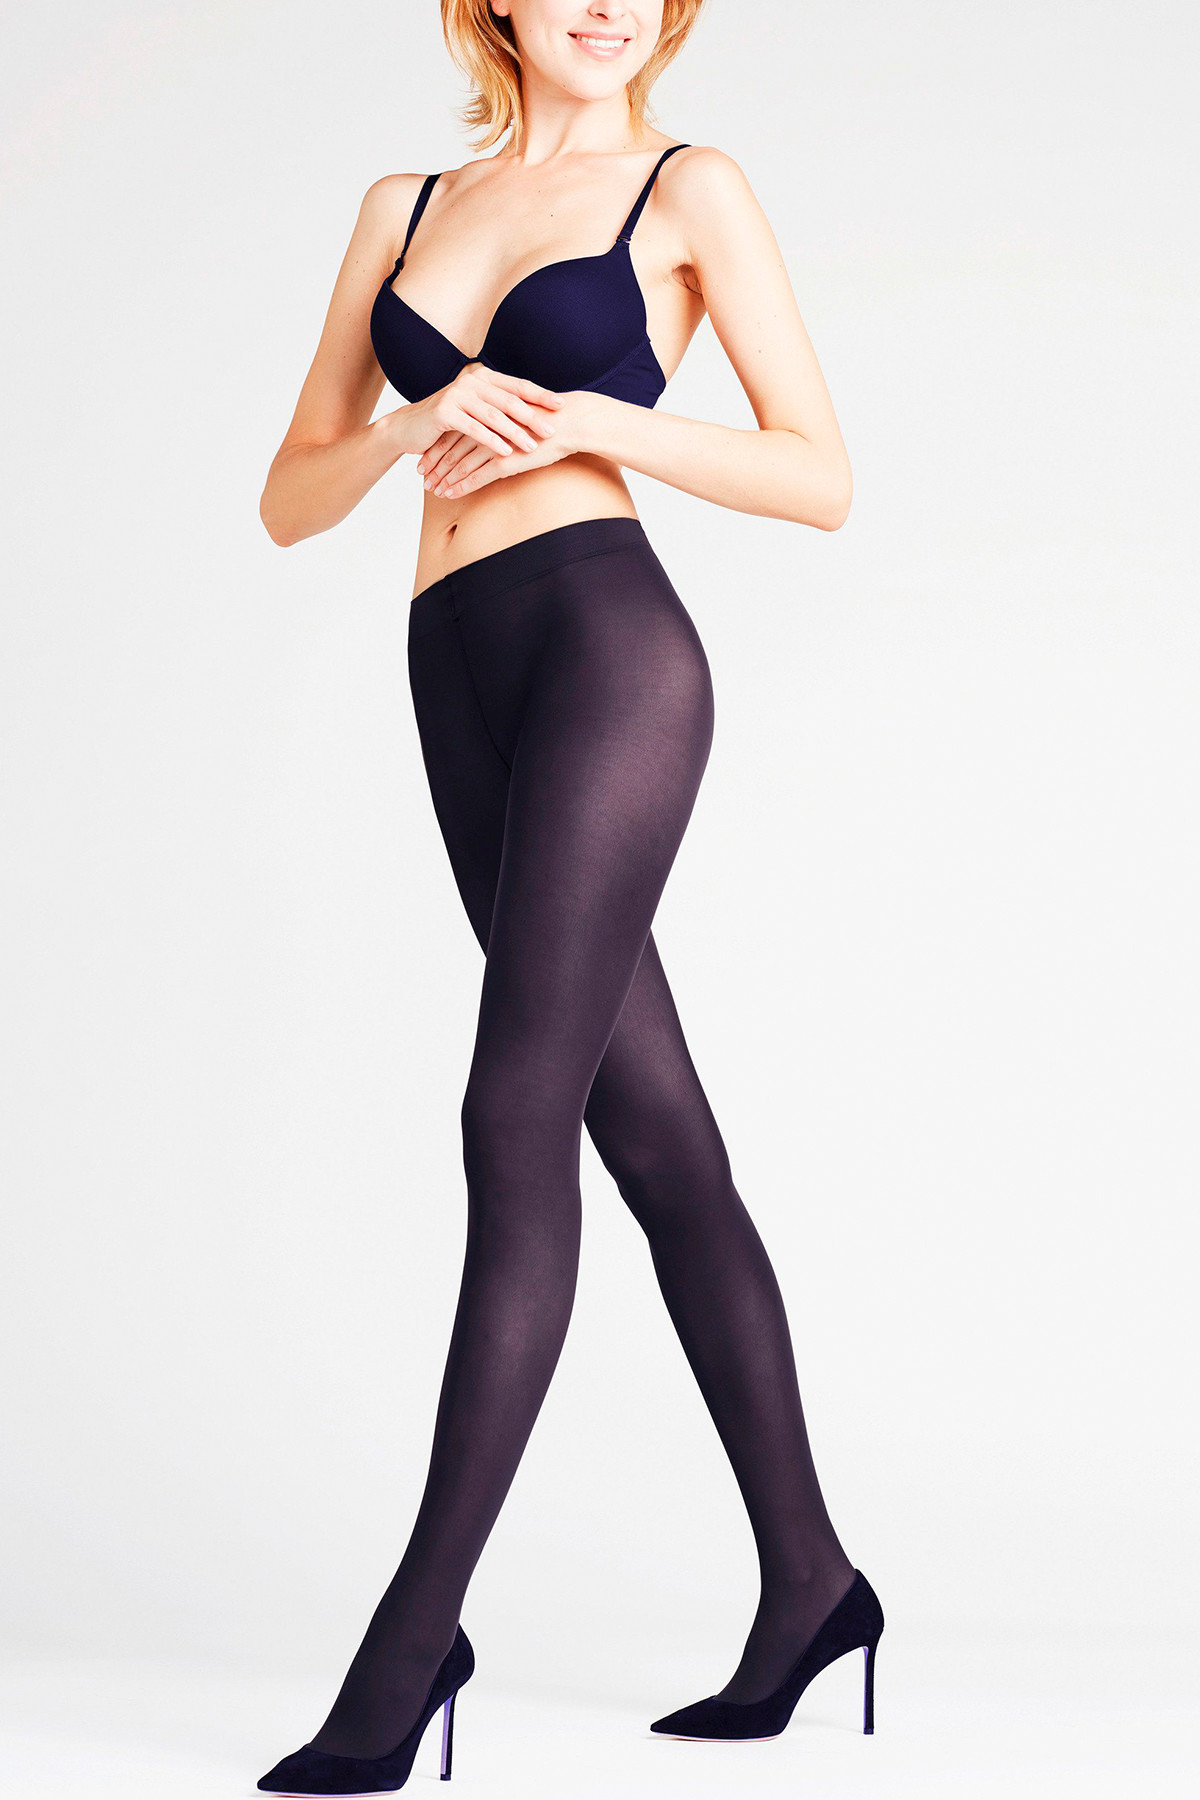 Image of   Falke Matt Deluxe Tights Marineblå - 40630 (Marine Blue, L)